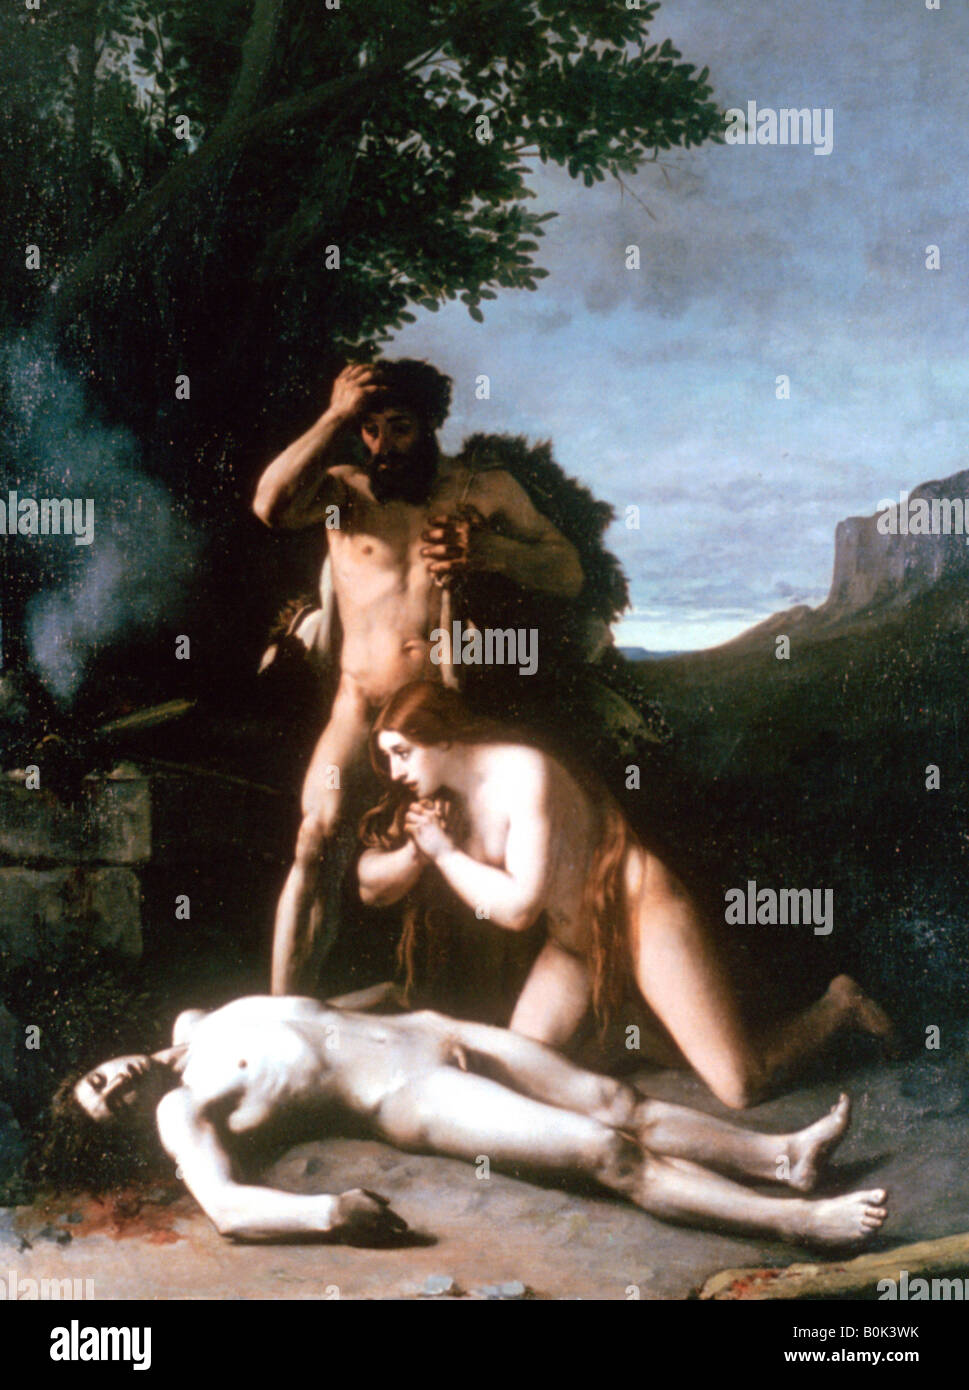 adam and eve finding the body of abel u0027 1858 artist jean jacques